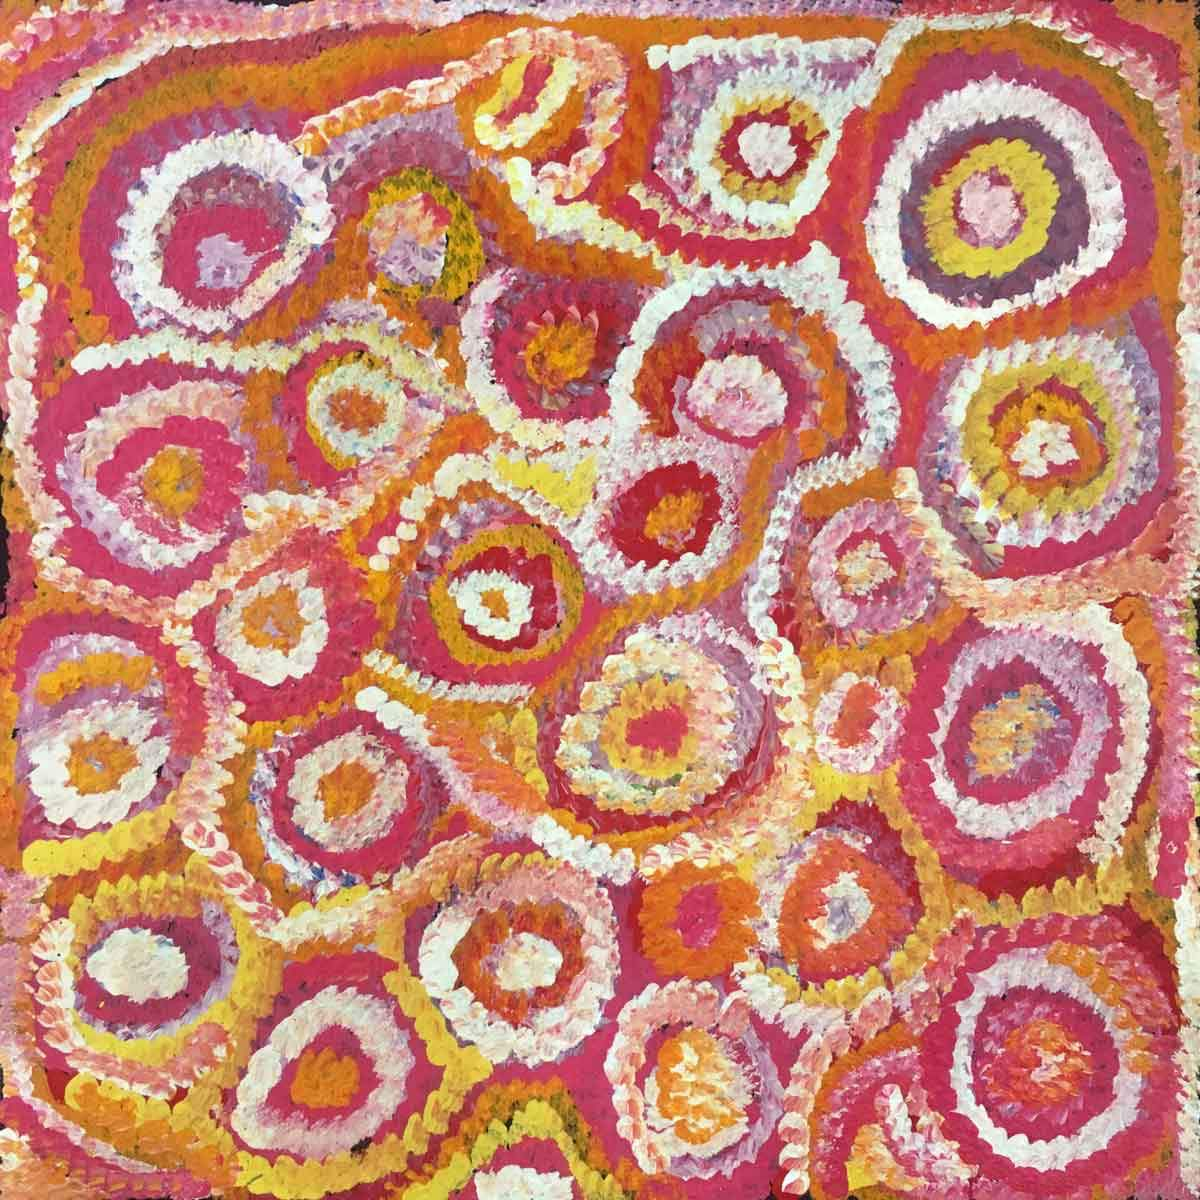 Pencil Yam Story by Dolly Mills Petyarre. Australian Aboriginal Art